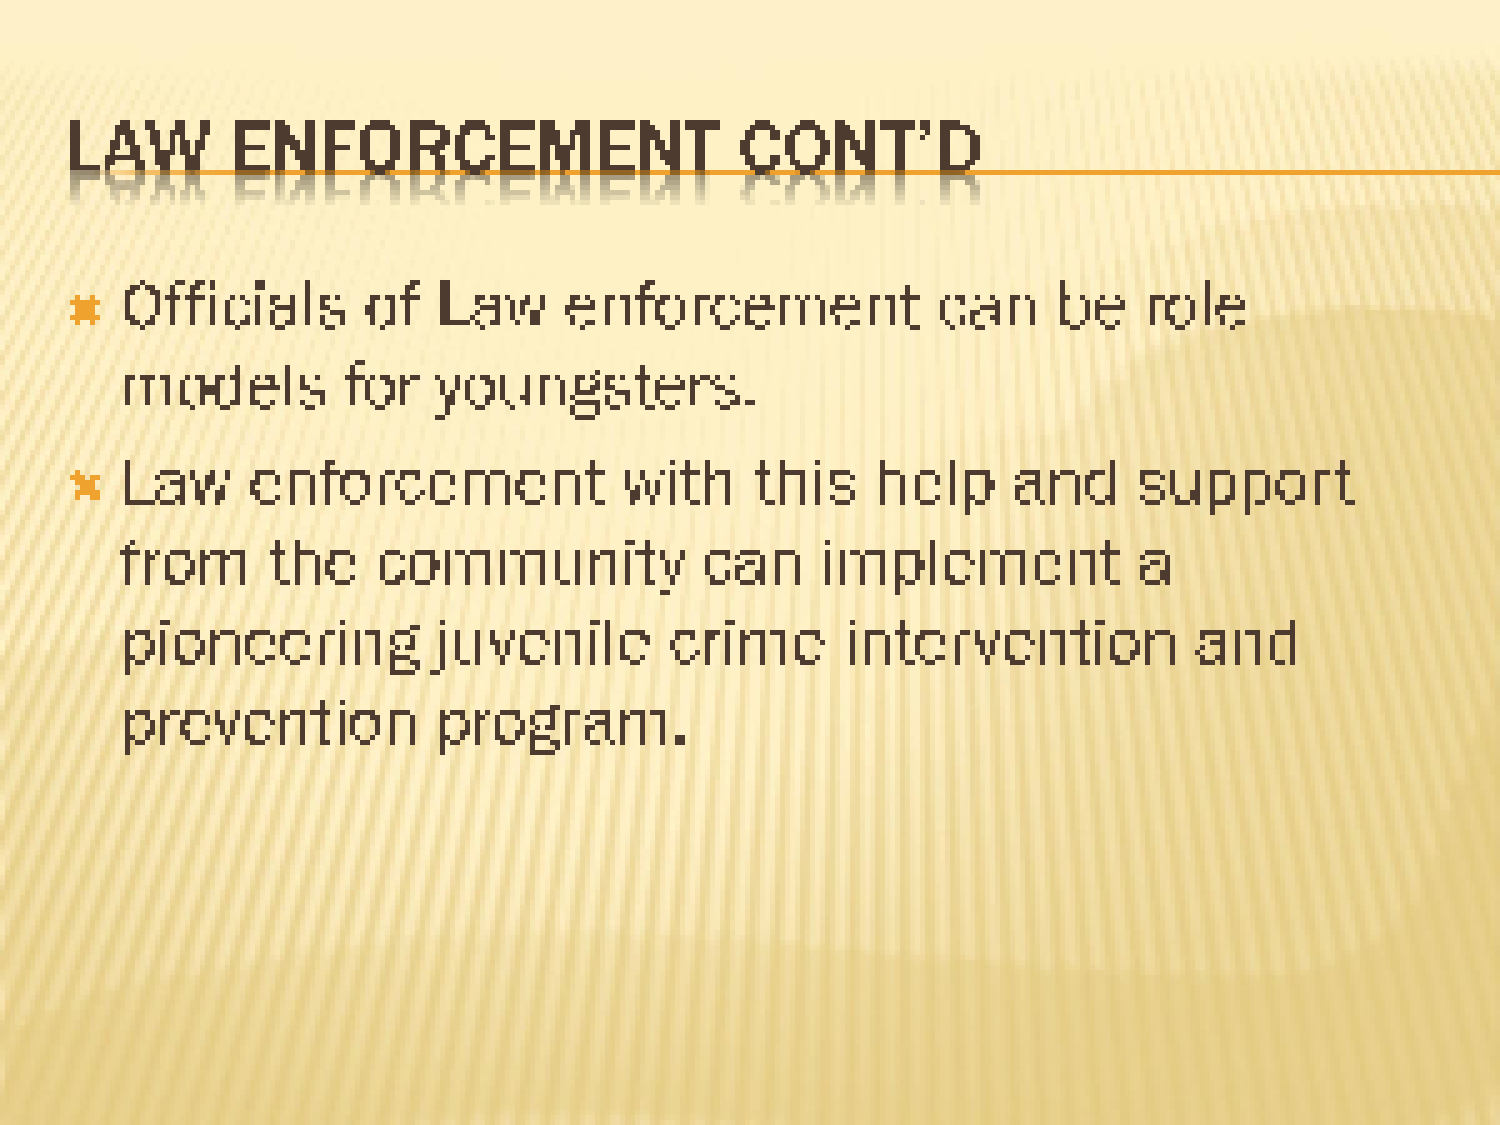 future of the juvenile justice system presentation and paper Autism now center for future planning® chapter excellence  people with  disabilities in the criminal justice system: promising  criminal justice and  disability® (nccjd) notes the decline in juvenile crime  the webinar will  feature brief presentations from multiple white paper authors, and webinar.